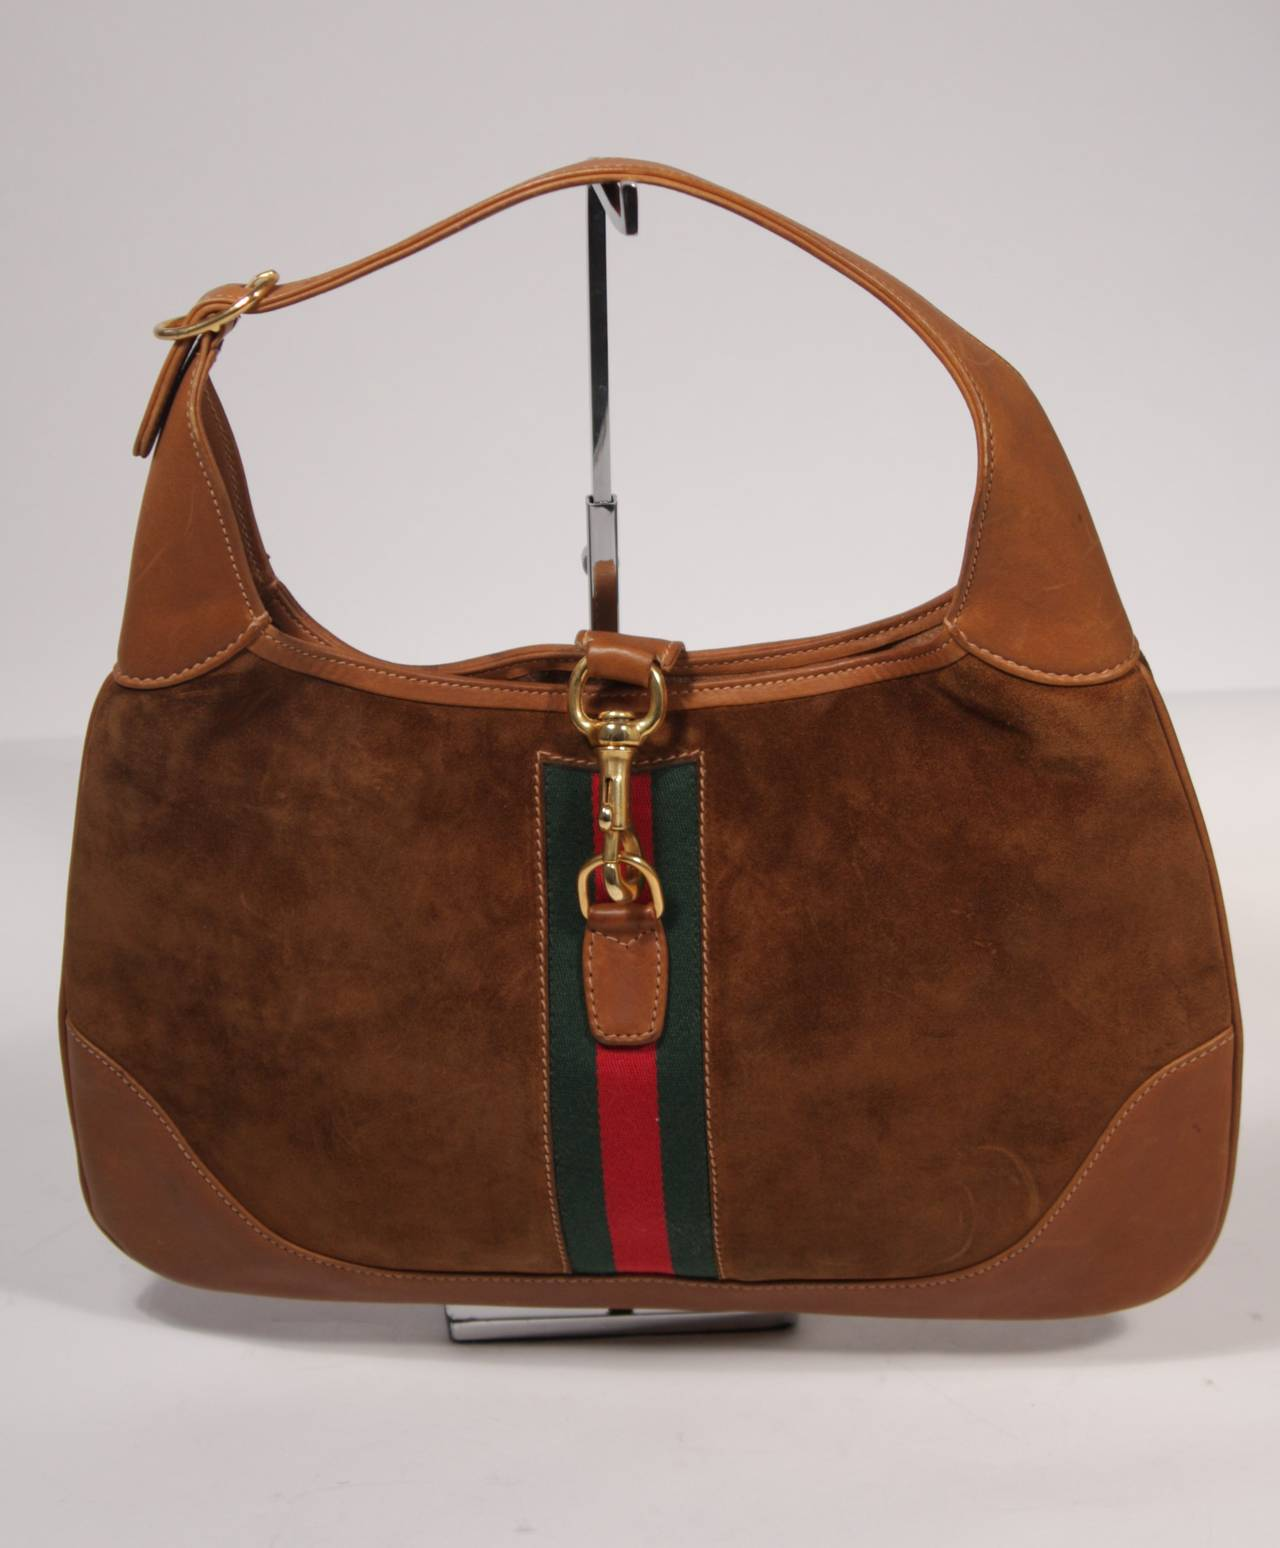 db116dcf5aa This is a Gucci vintage handbag. The hobo style purse is composed of a rich